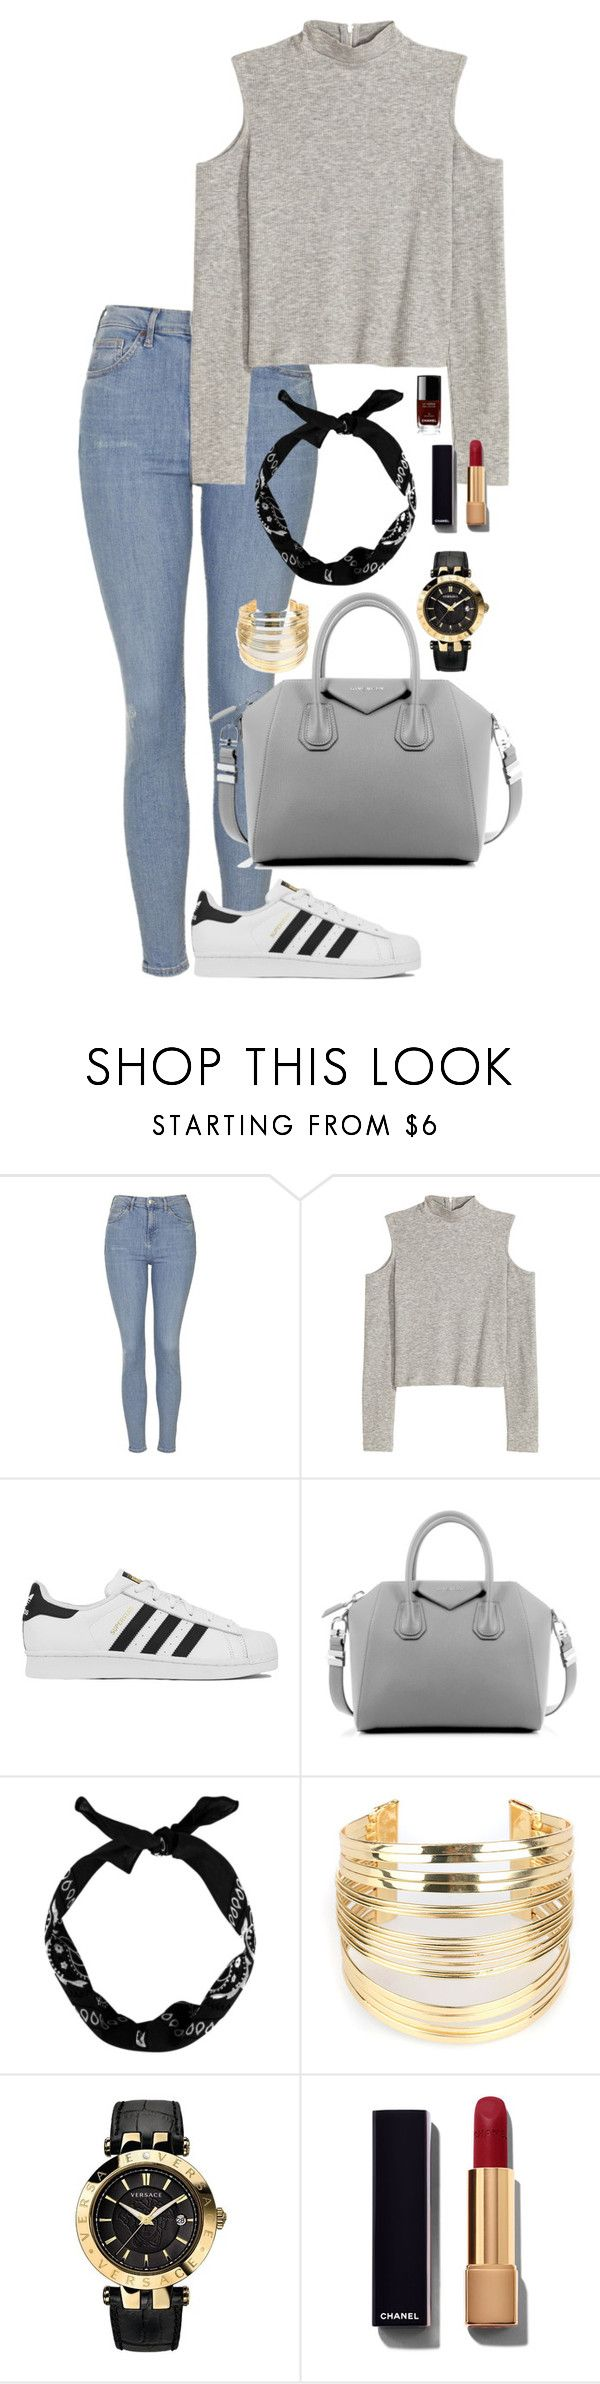 """Outfit 148"" by lexiesimpson on Polyvore featuring Topshop, adidas, Givenchy, WithChic, Versace, Chanel, women's clothing, women, female and woman"